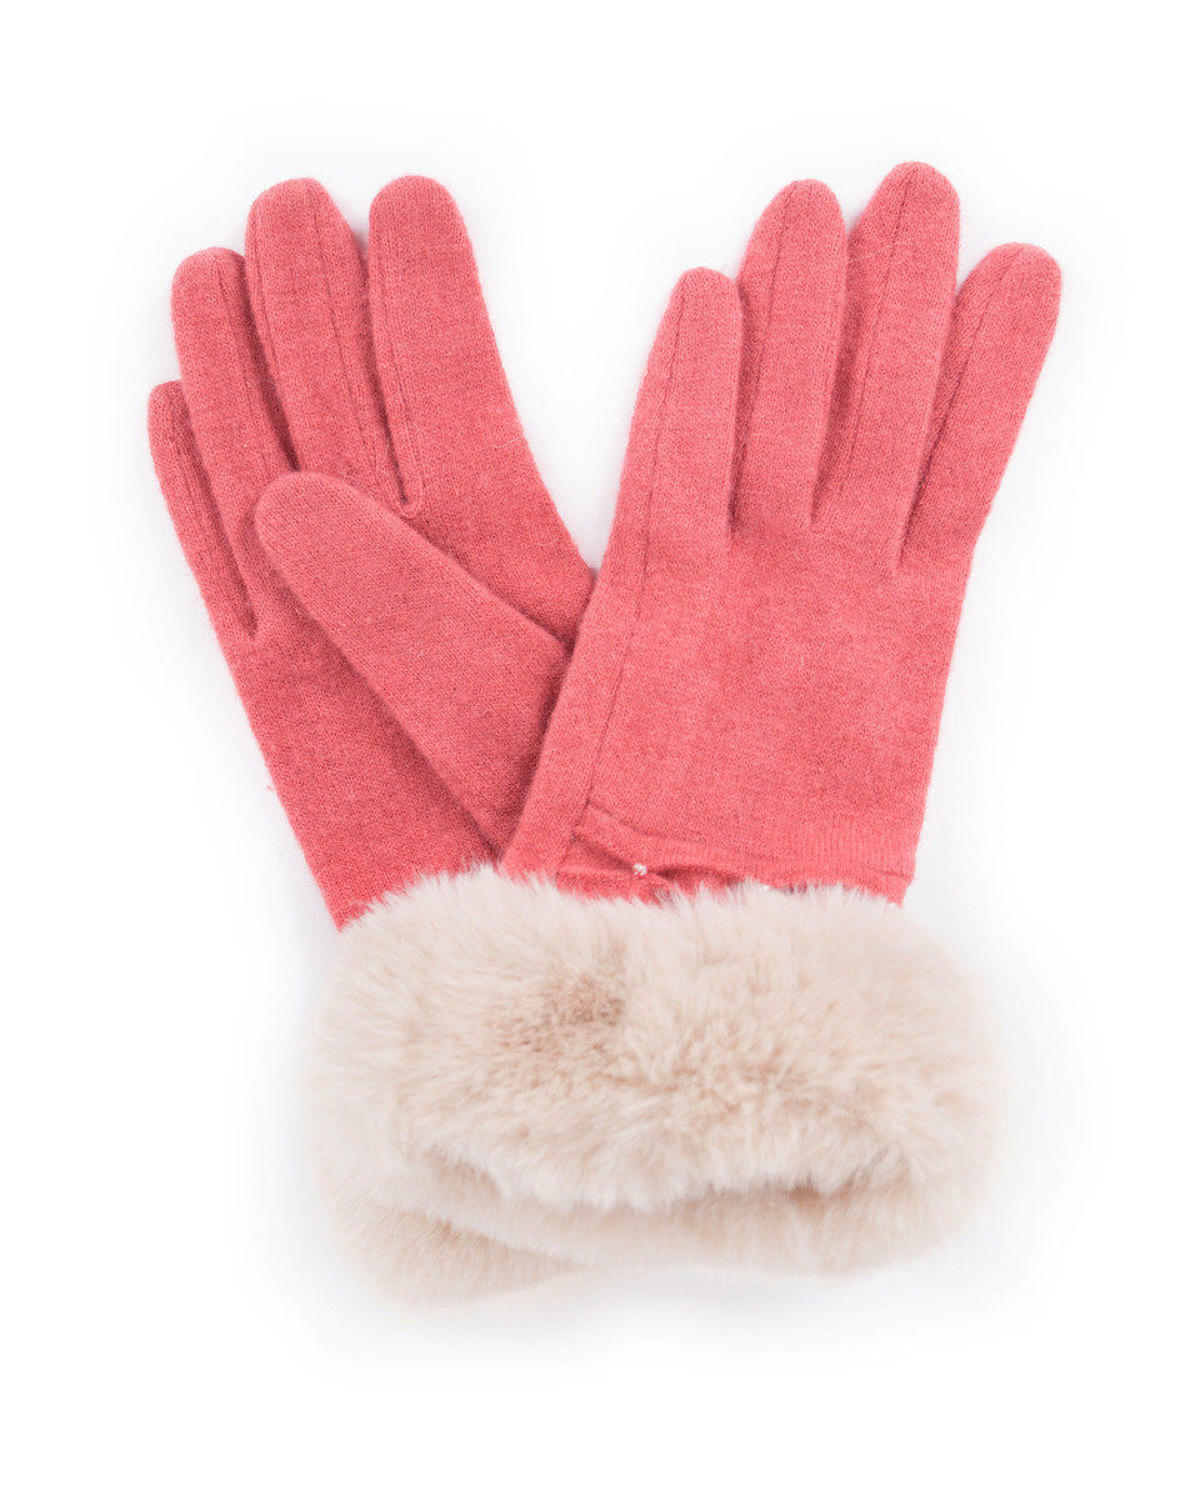 Powder - Tamara wool gloves in Coral - One size